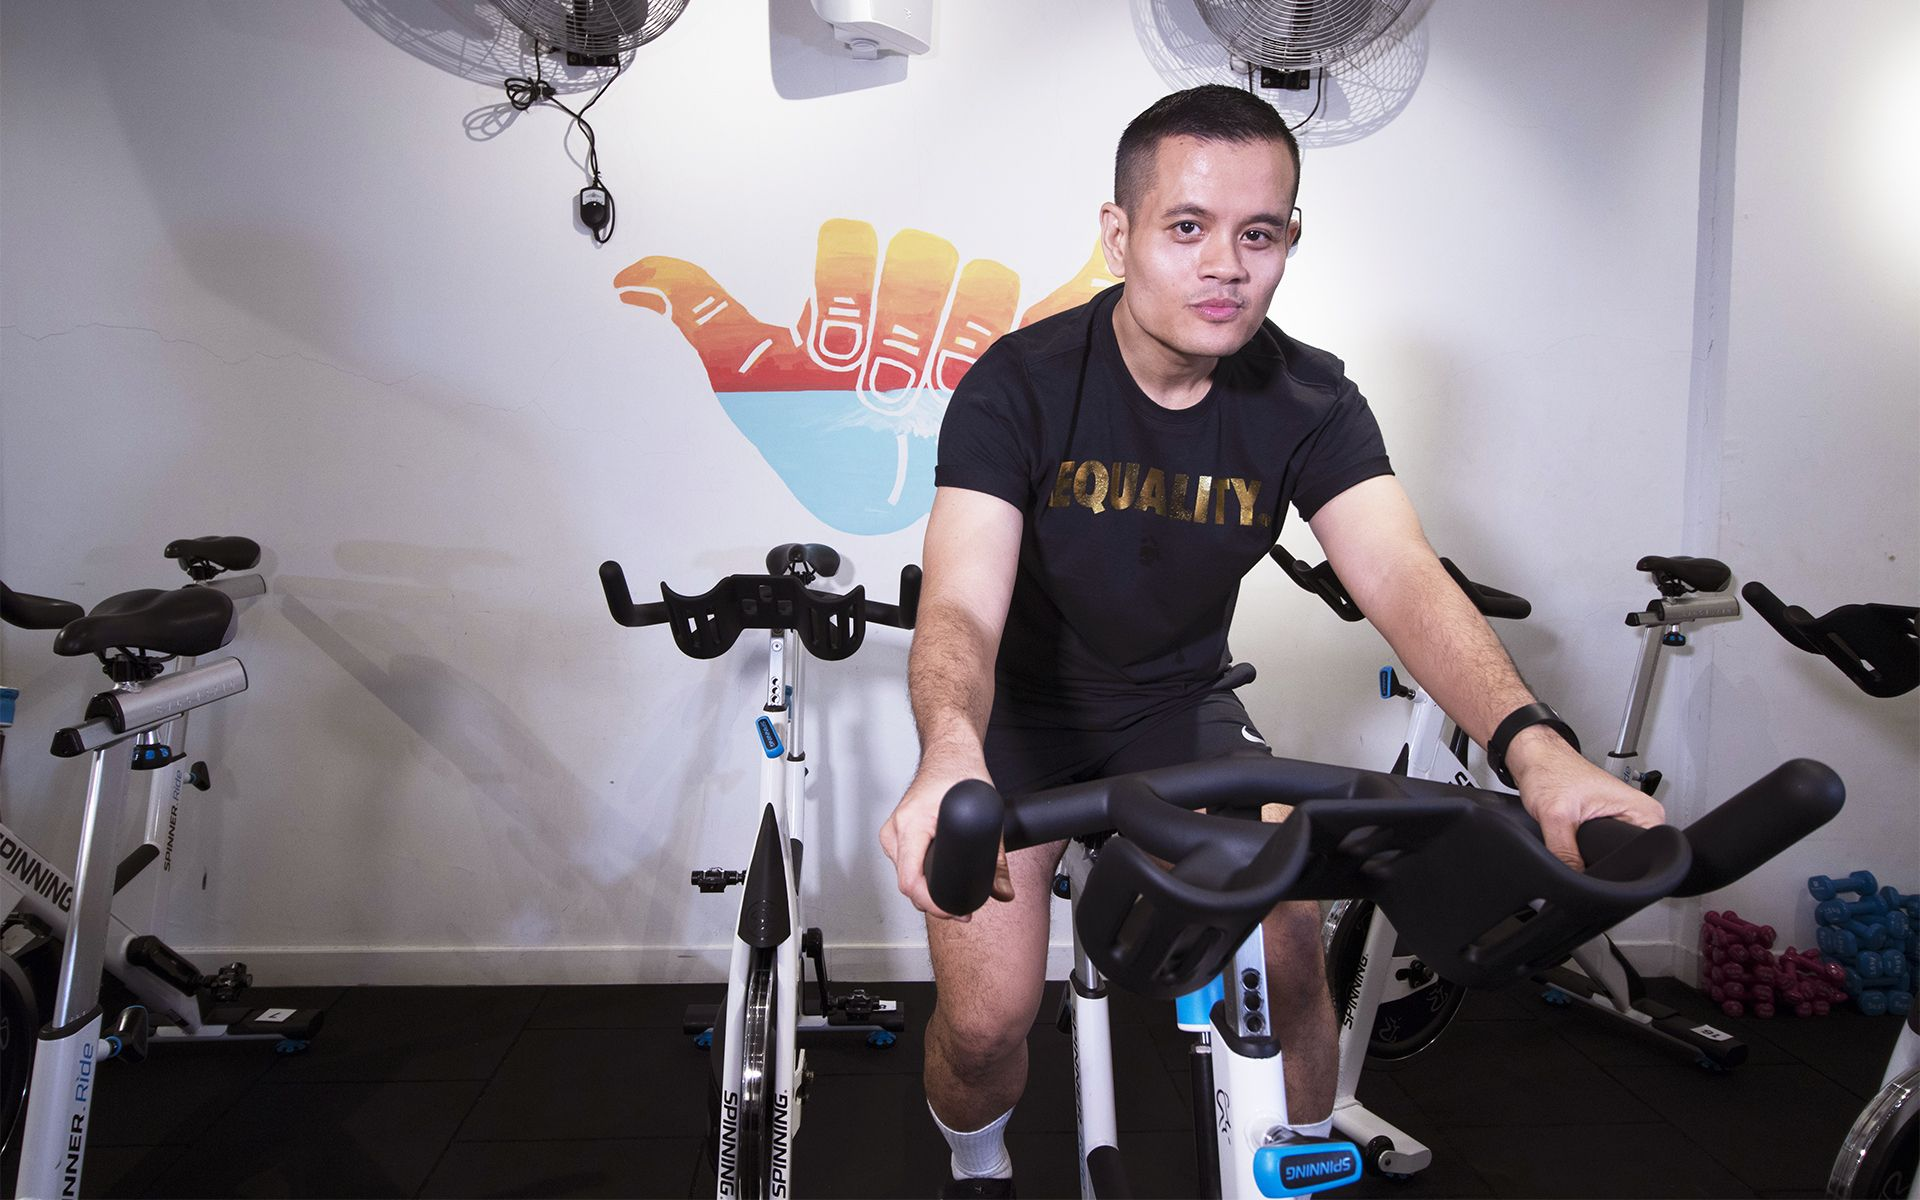 Watch: Spinning King Amri Rahim, On How Cardio Treated His Diabetes